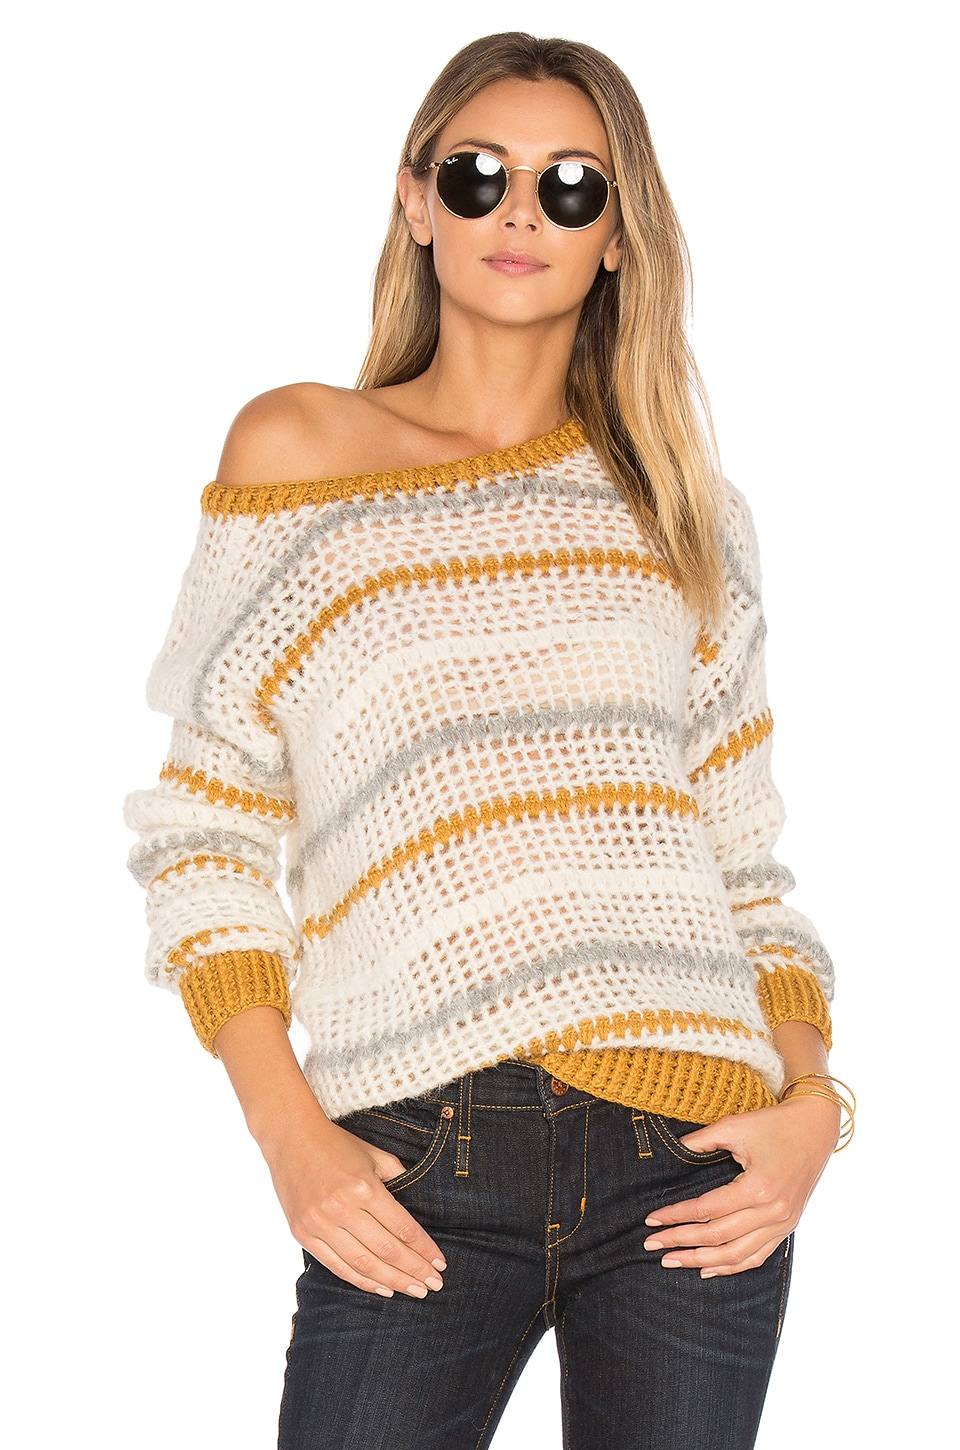 Mullu Crochet Sweater